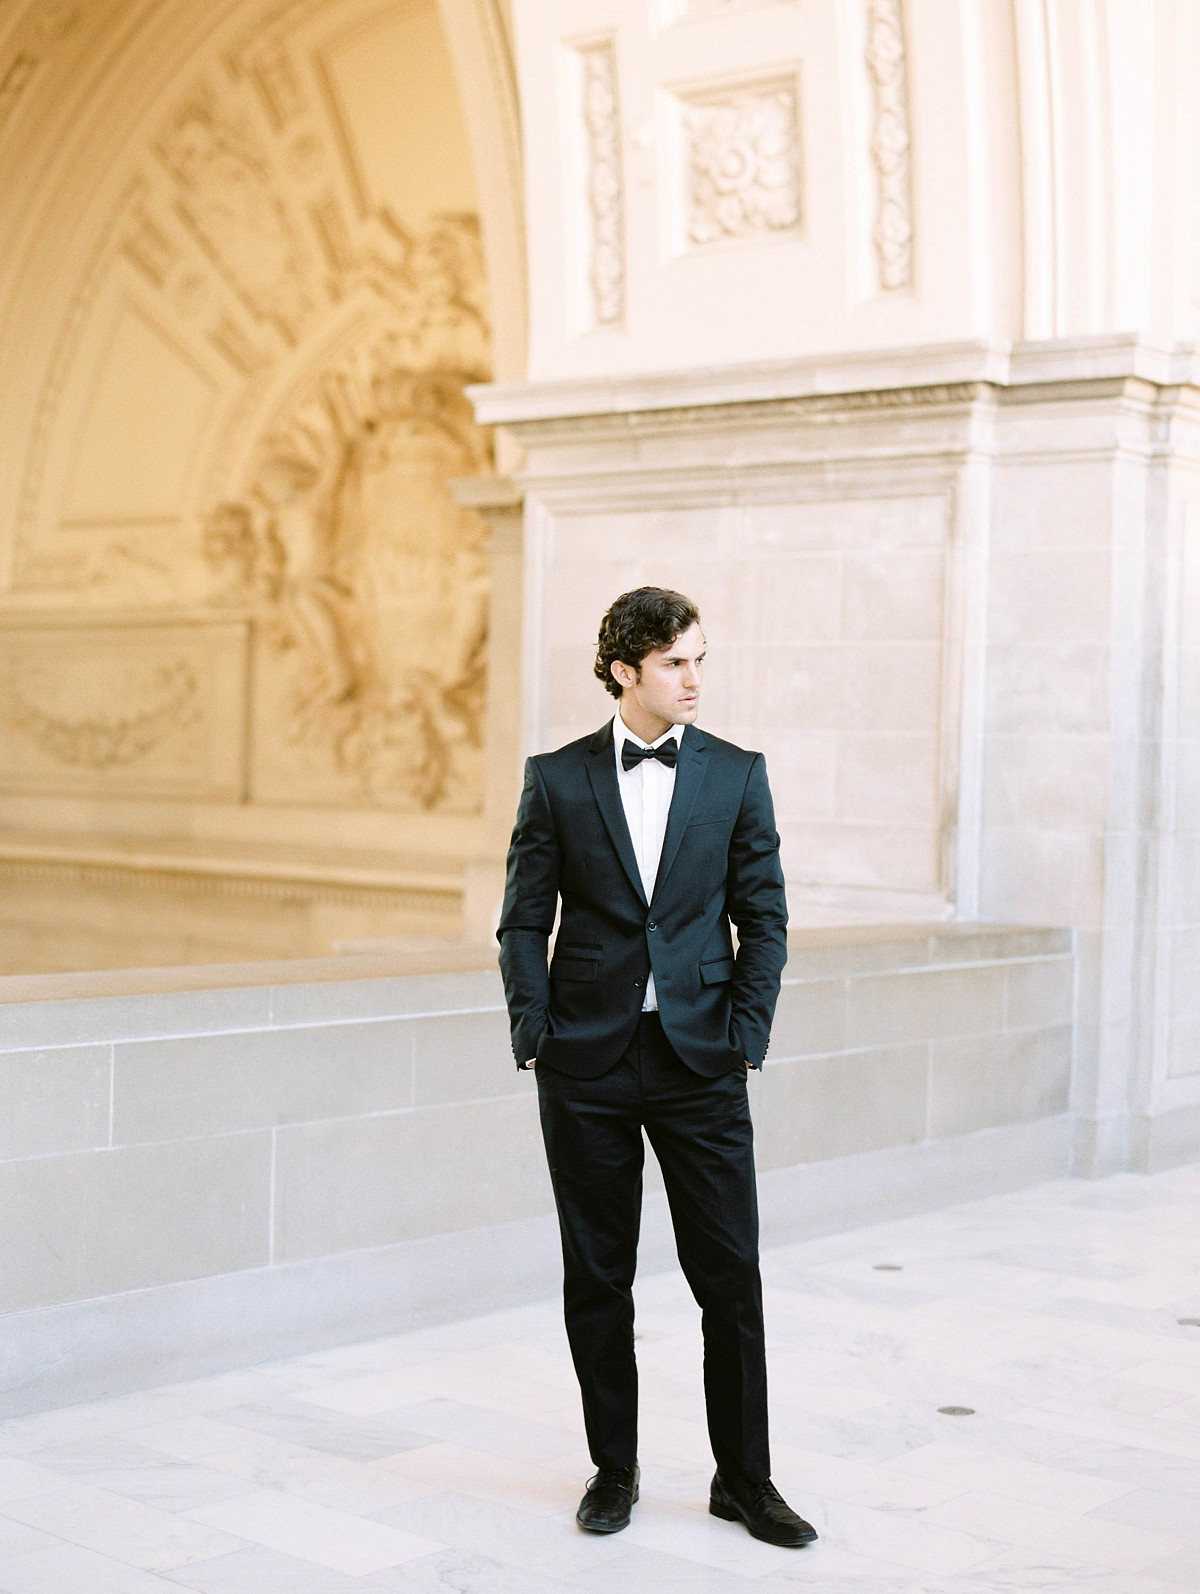 How a City Hall Elopement can be Stunning and Intimate